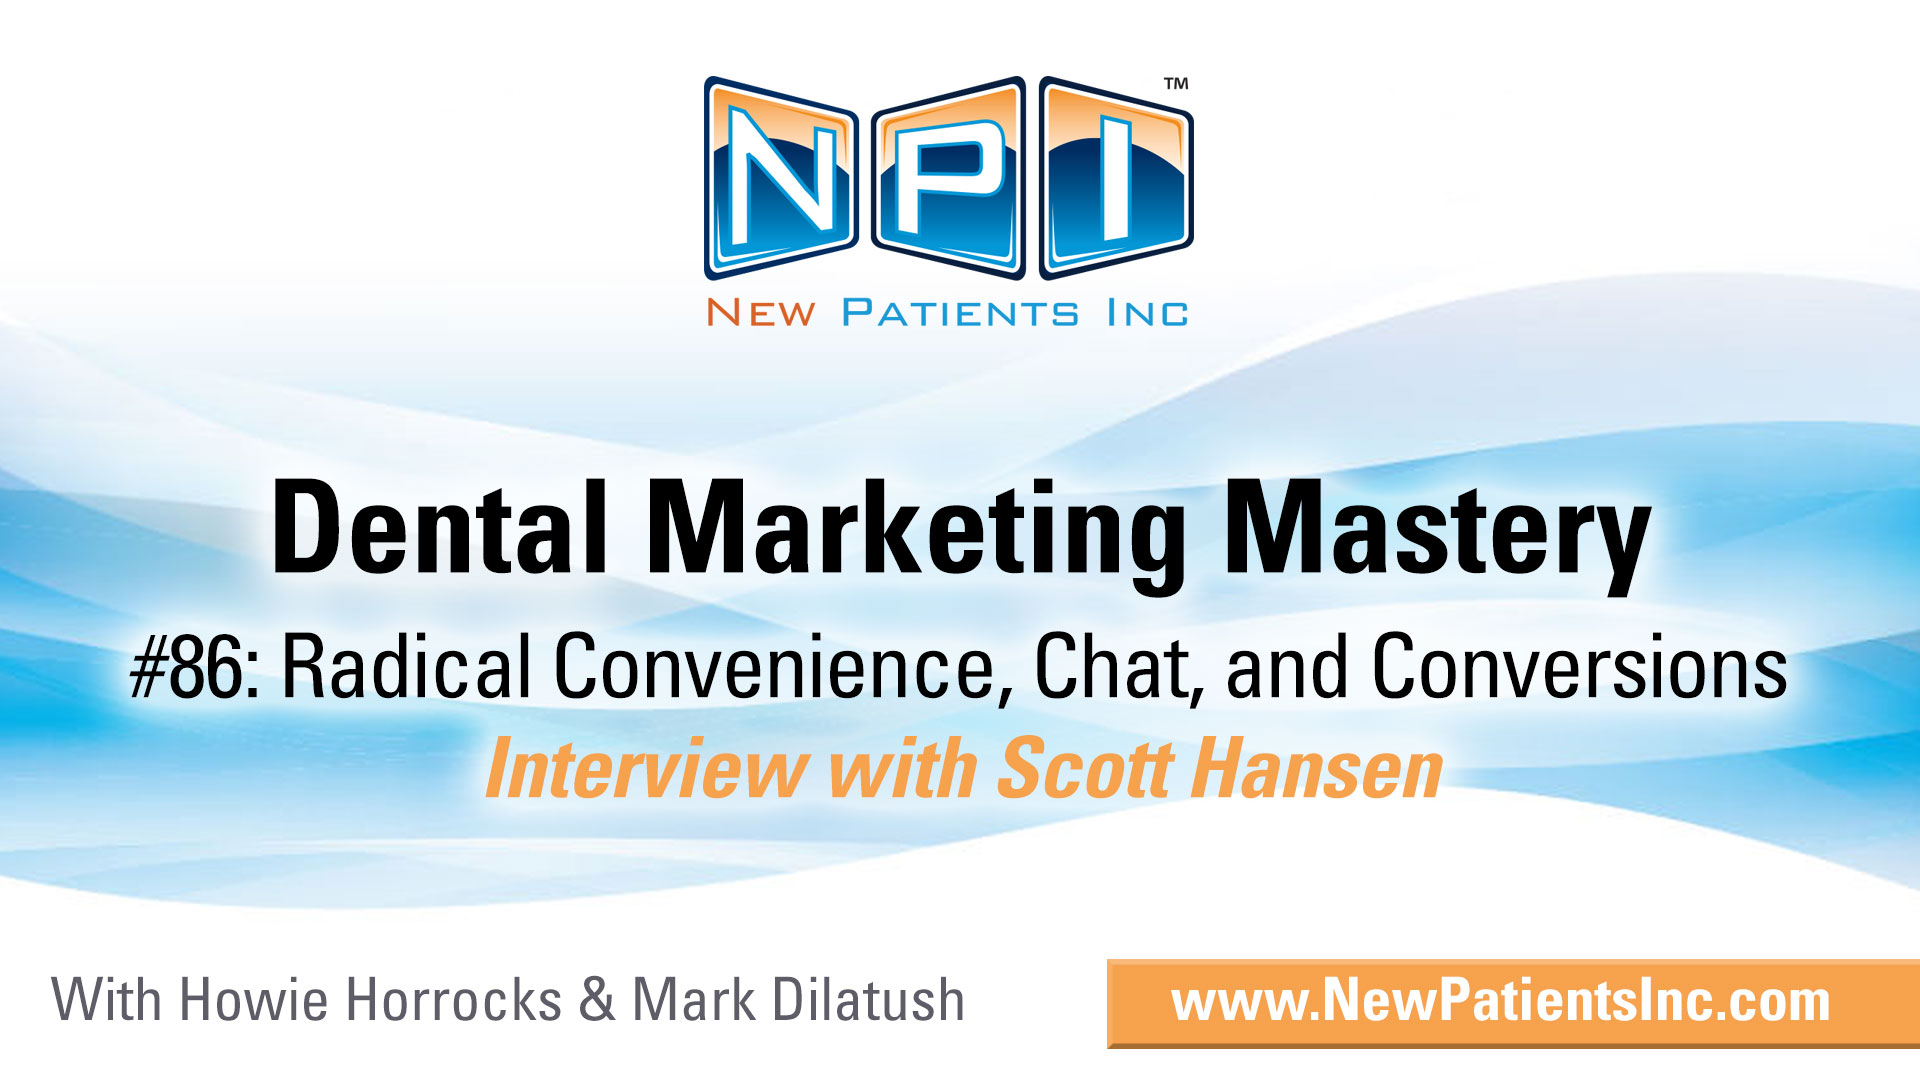 Dental Patient Experience, Radical Convenience, Chat, and Conversions